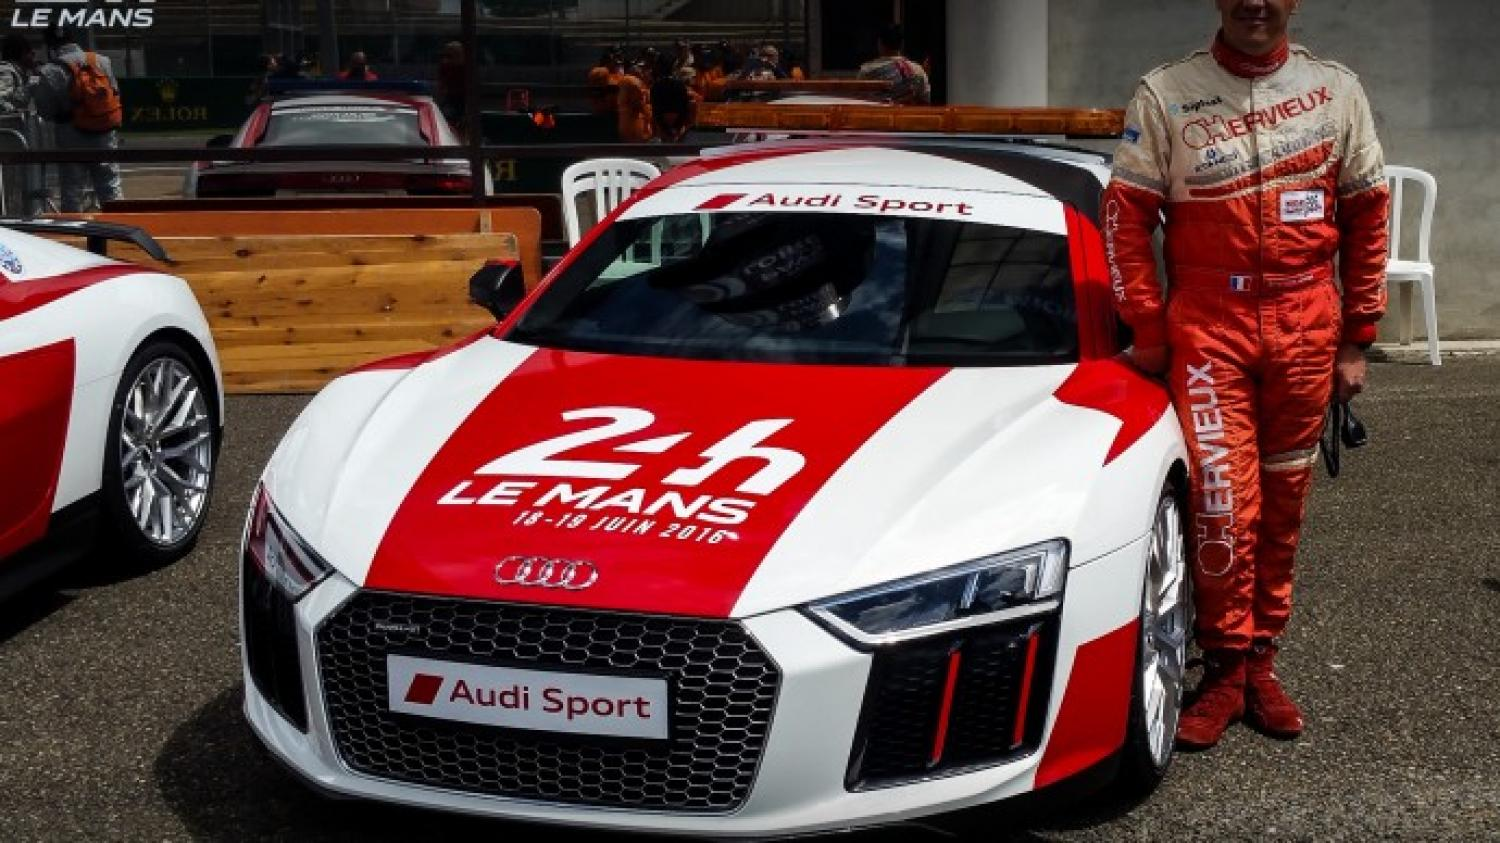 Behind the scenes with the 24 Hours of Le Mans safety cars